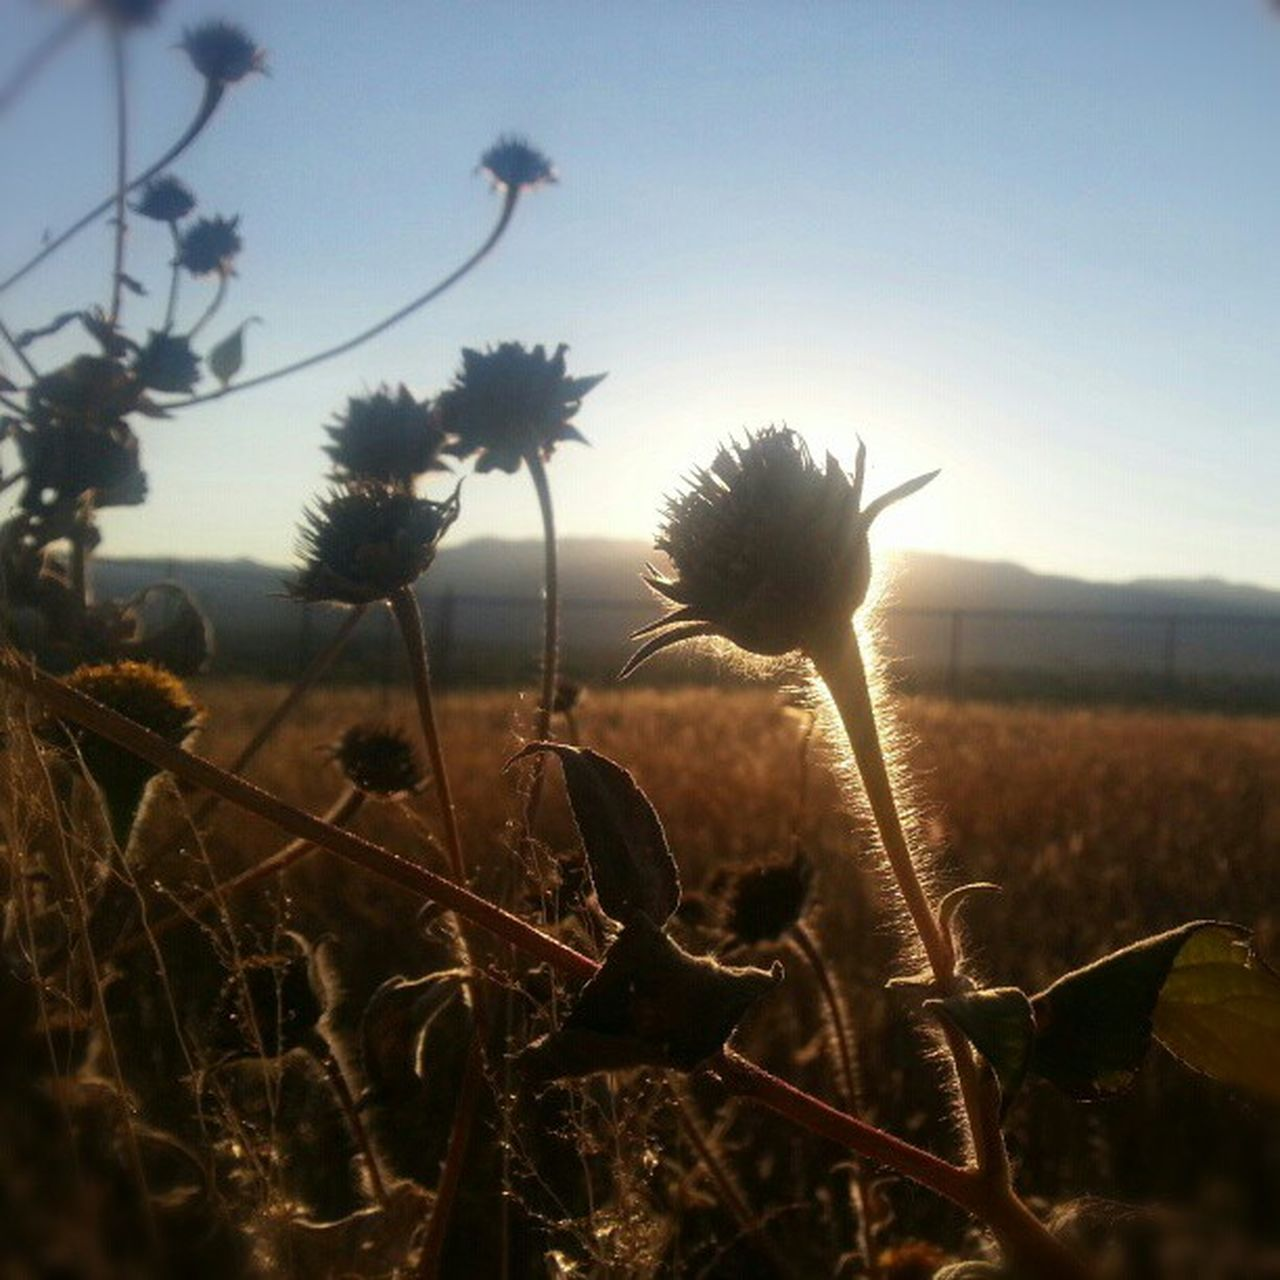 growth, nature, field, plant, tranquility, beauty in nature, outdoors, no people, landscape, flower, sunset, rural scene, sky, day, clear sky, grass, fragility, thistle, close-up, freshness